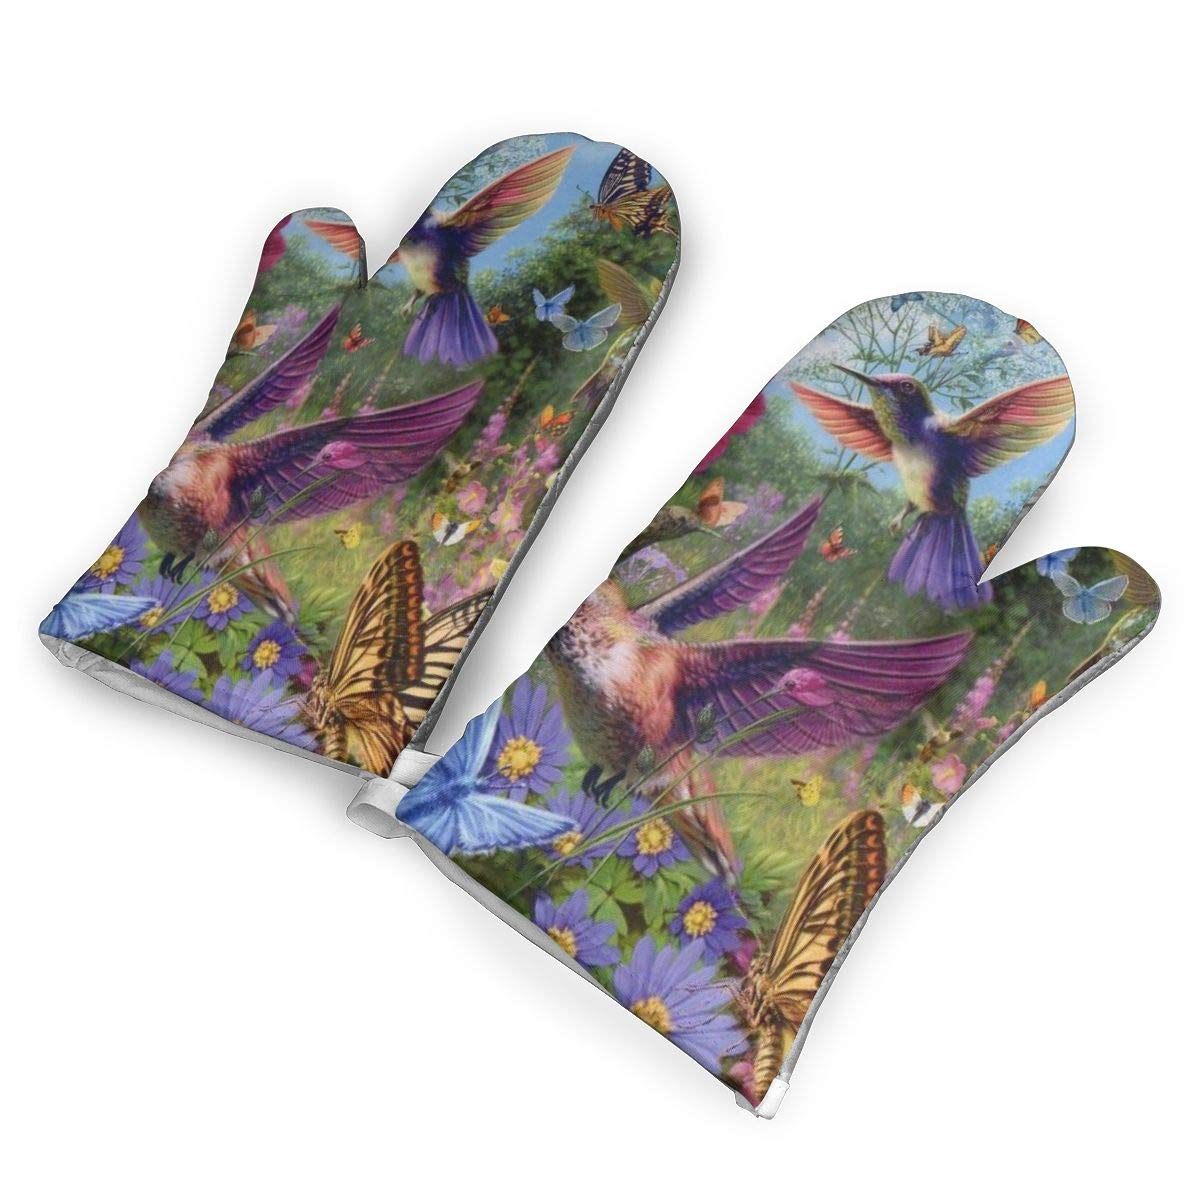 ZORITO Hummingbird and Butterfly Oven Mitts - 1 Pair of Extra Long Professional Non-Slip Baking Gloves - Food Safe, Soft Inner Lining